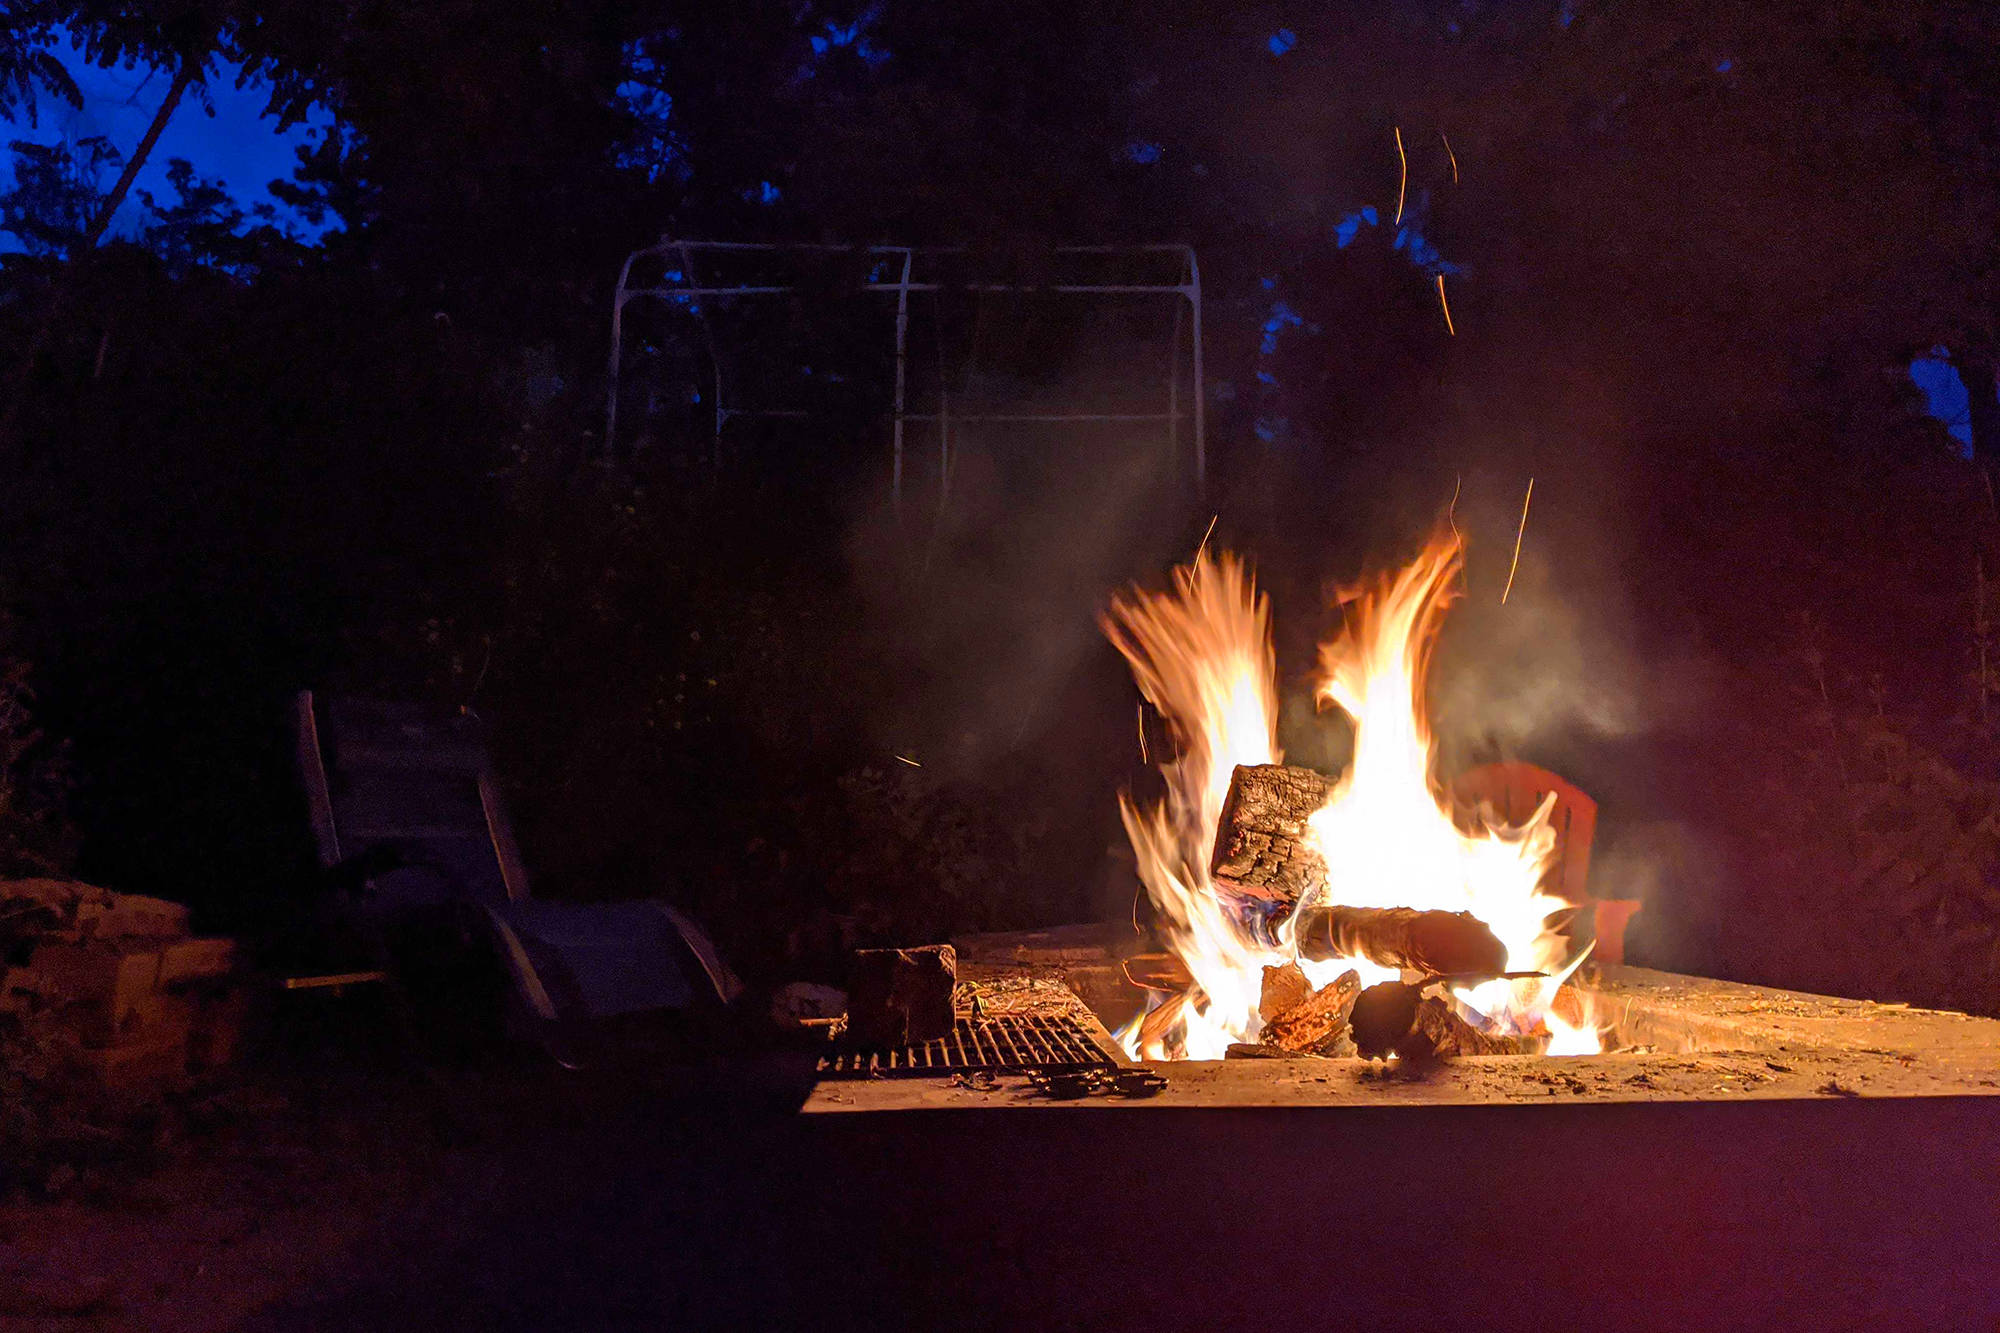 For many, campfires are an important part of the camping experience. (Black Press file photo)